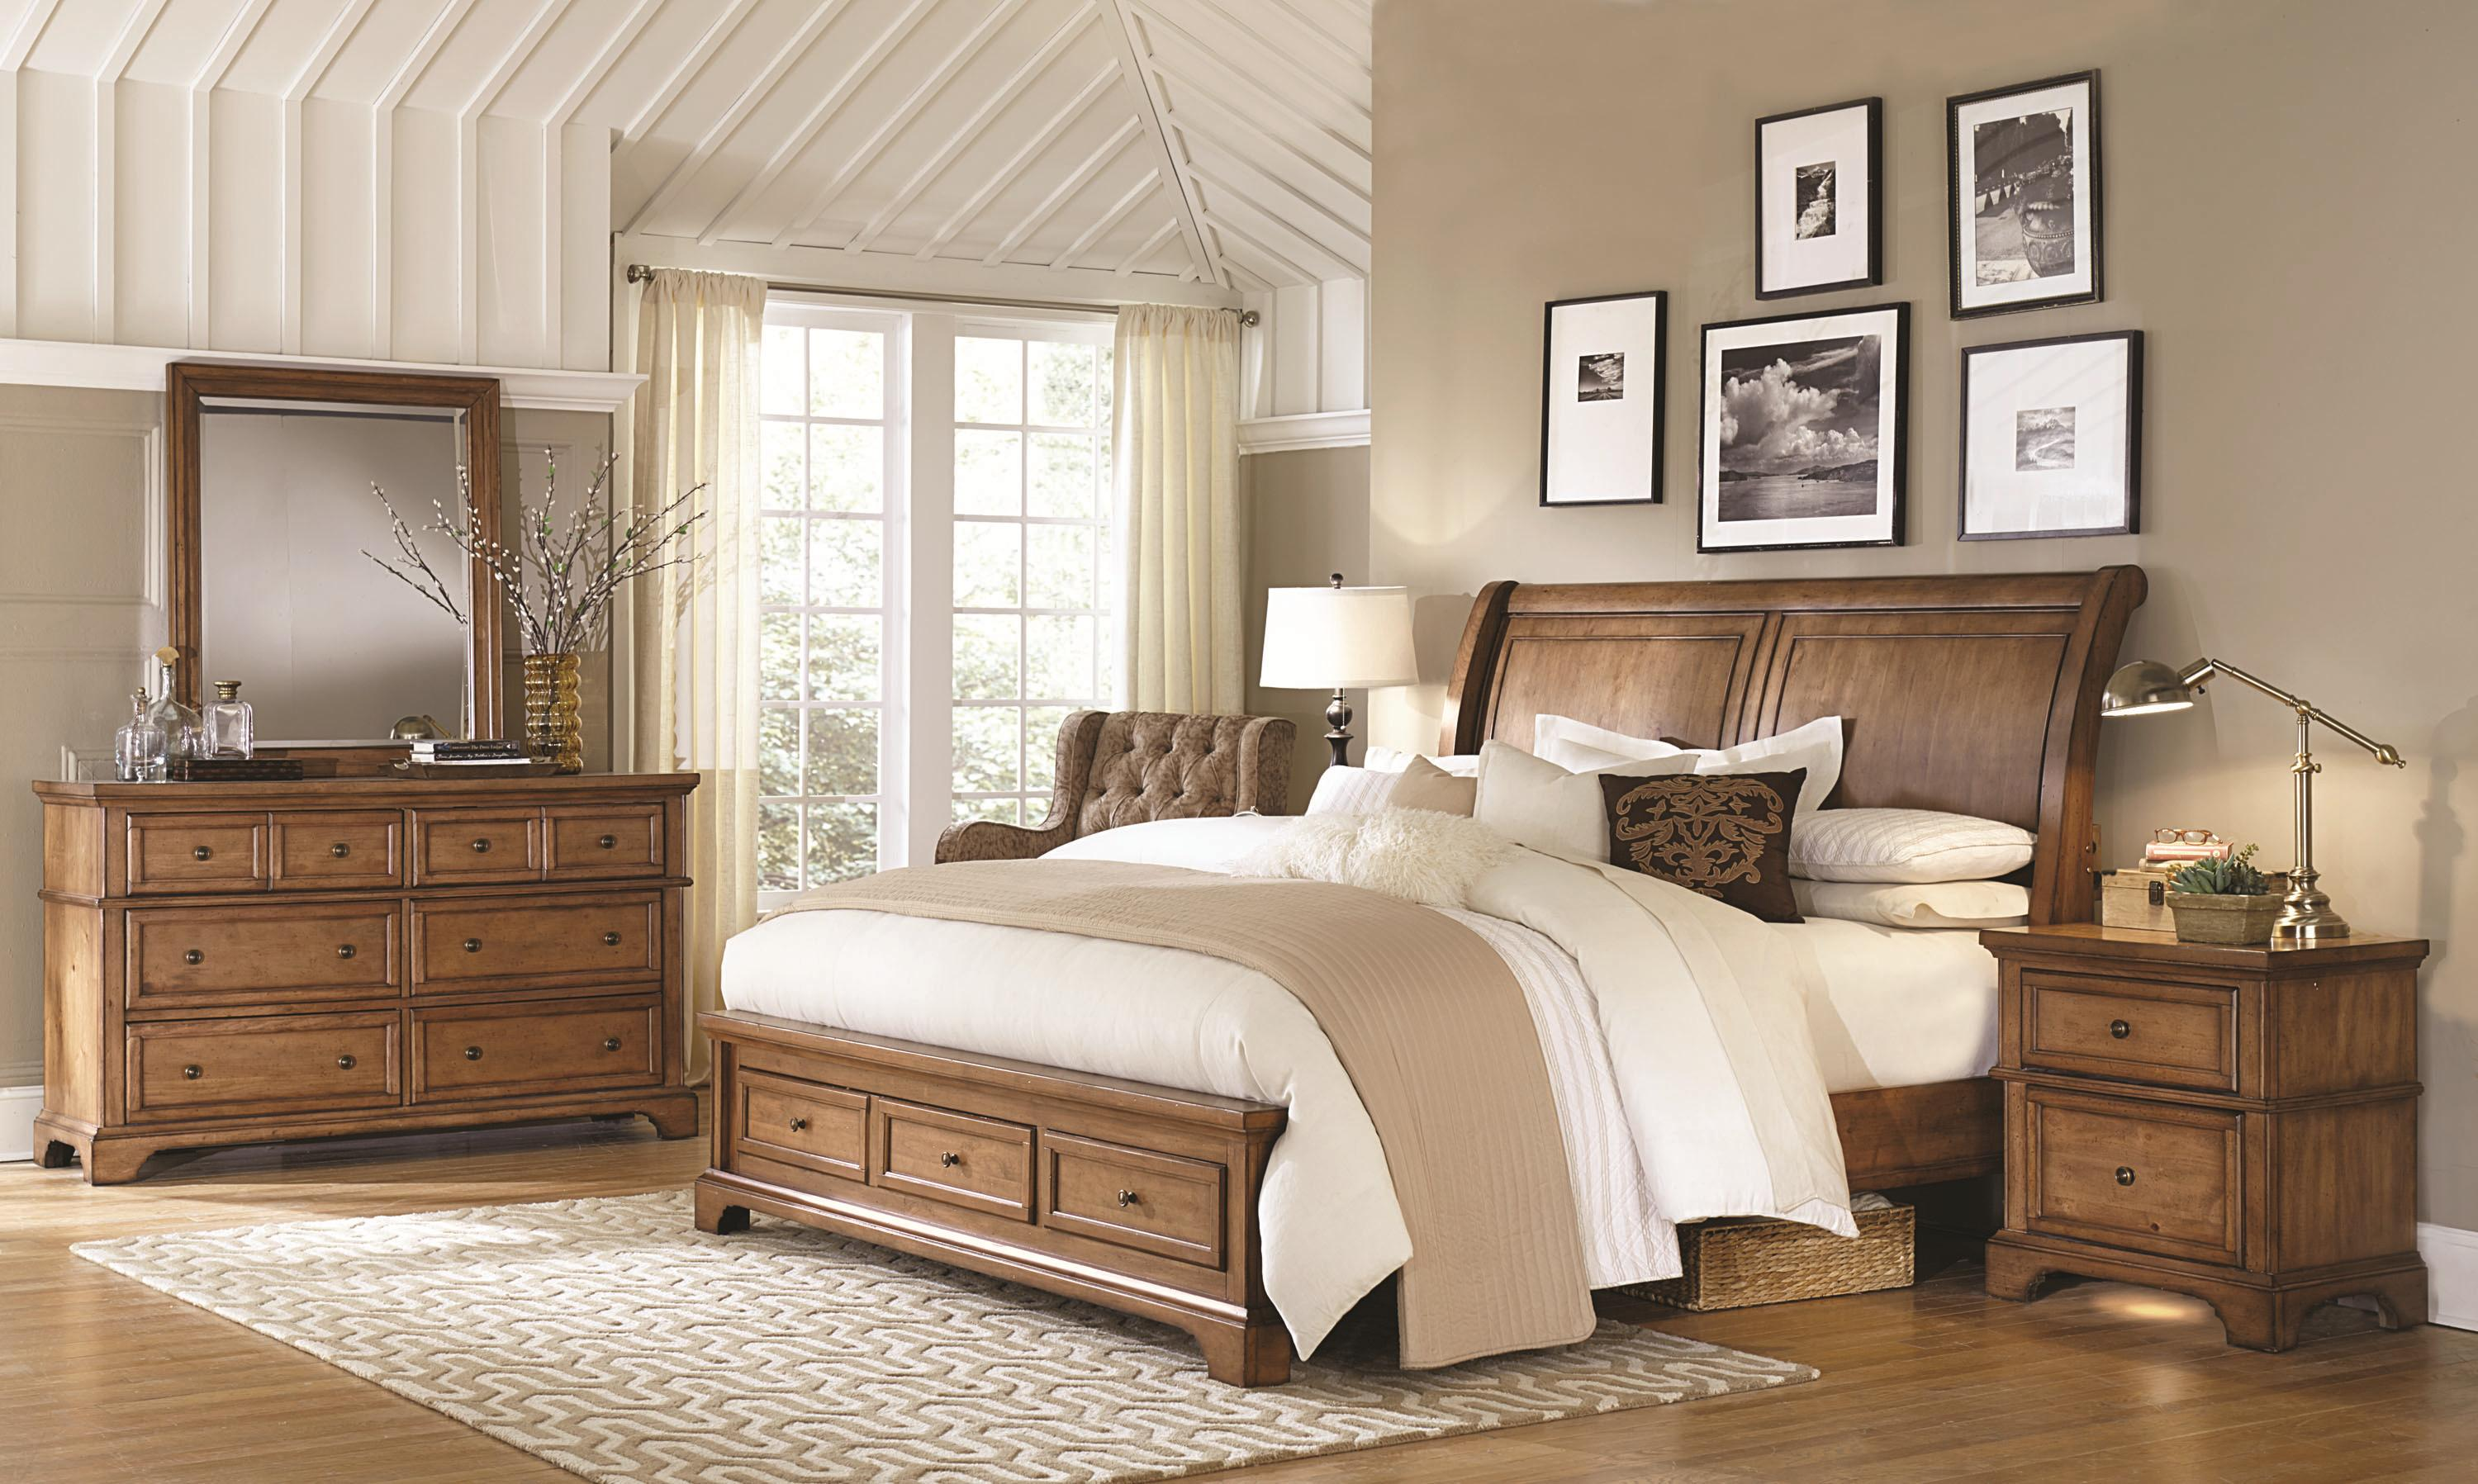 Alder Creek Queen Bedroom Group 1 by Aspenhome at Fashion Furniture